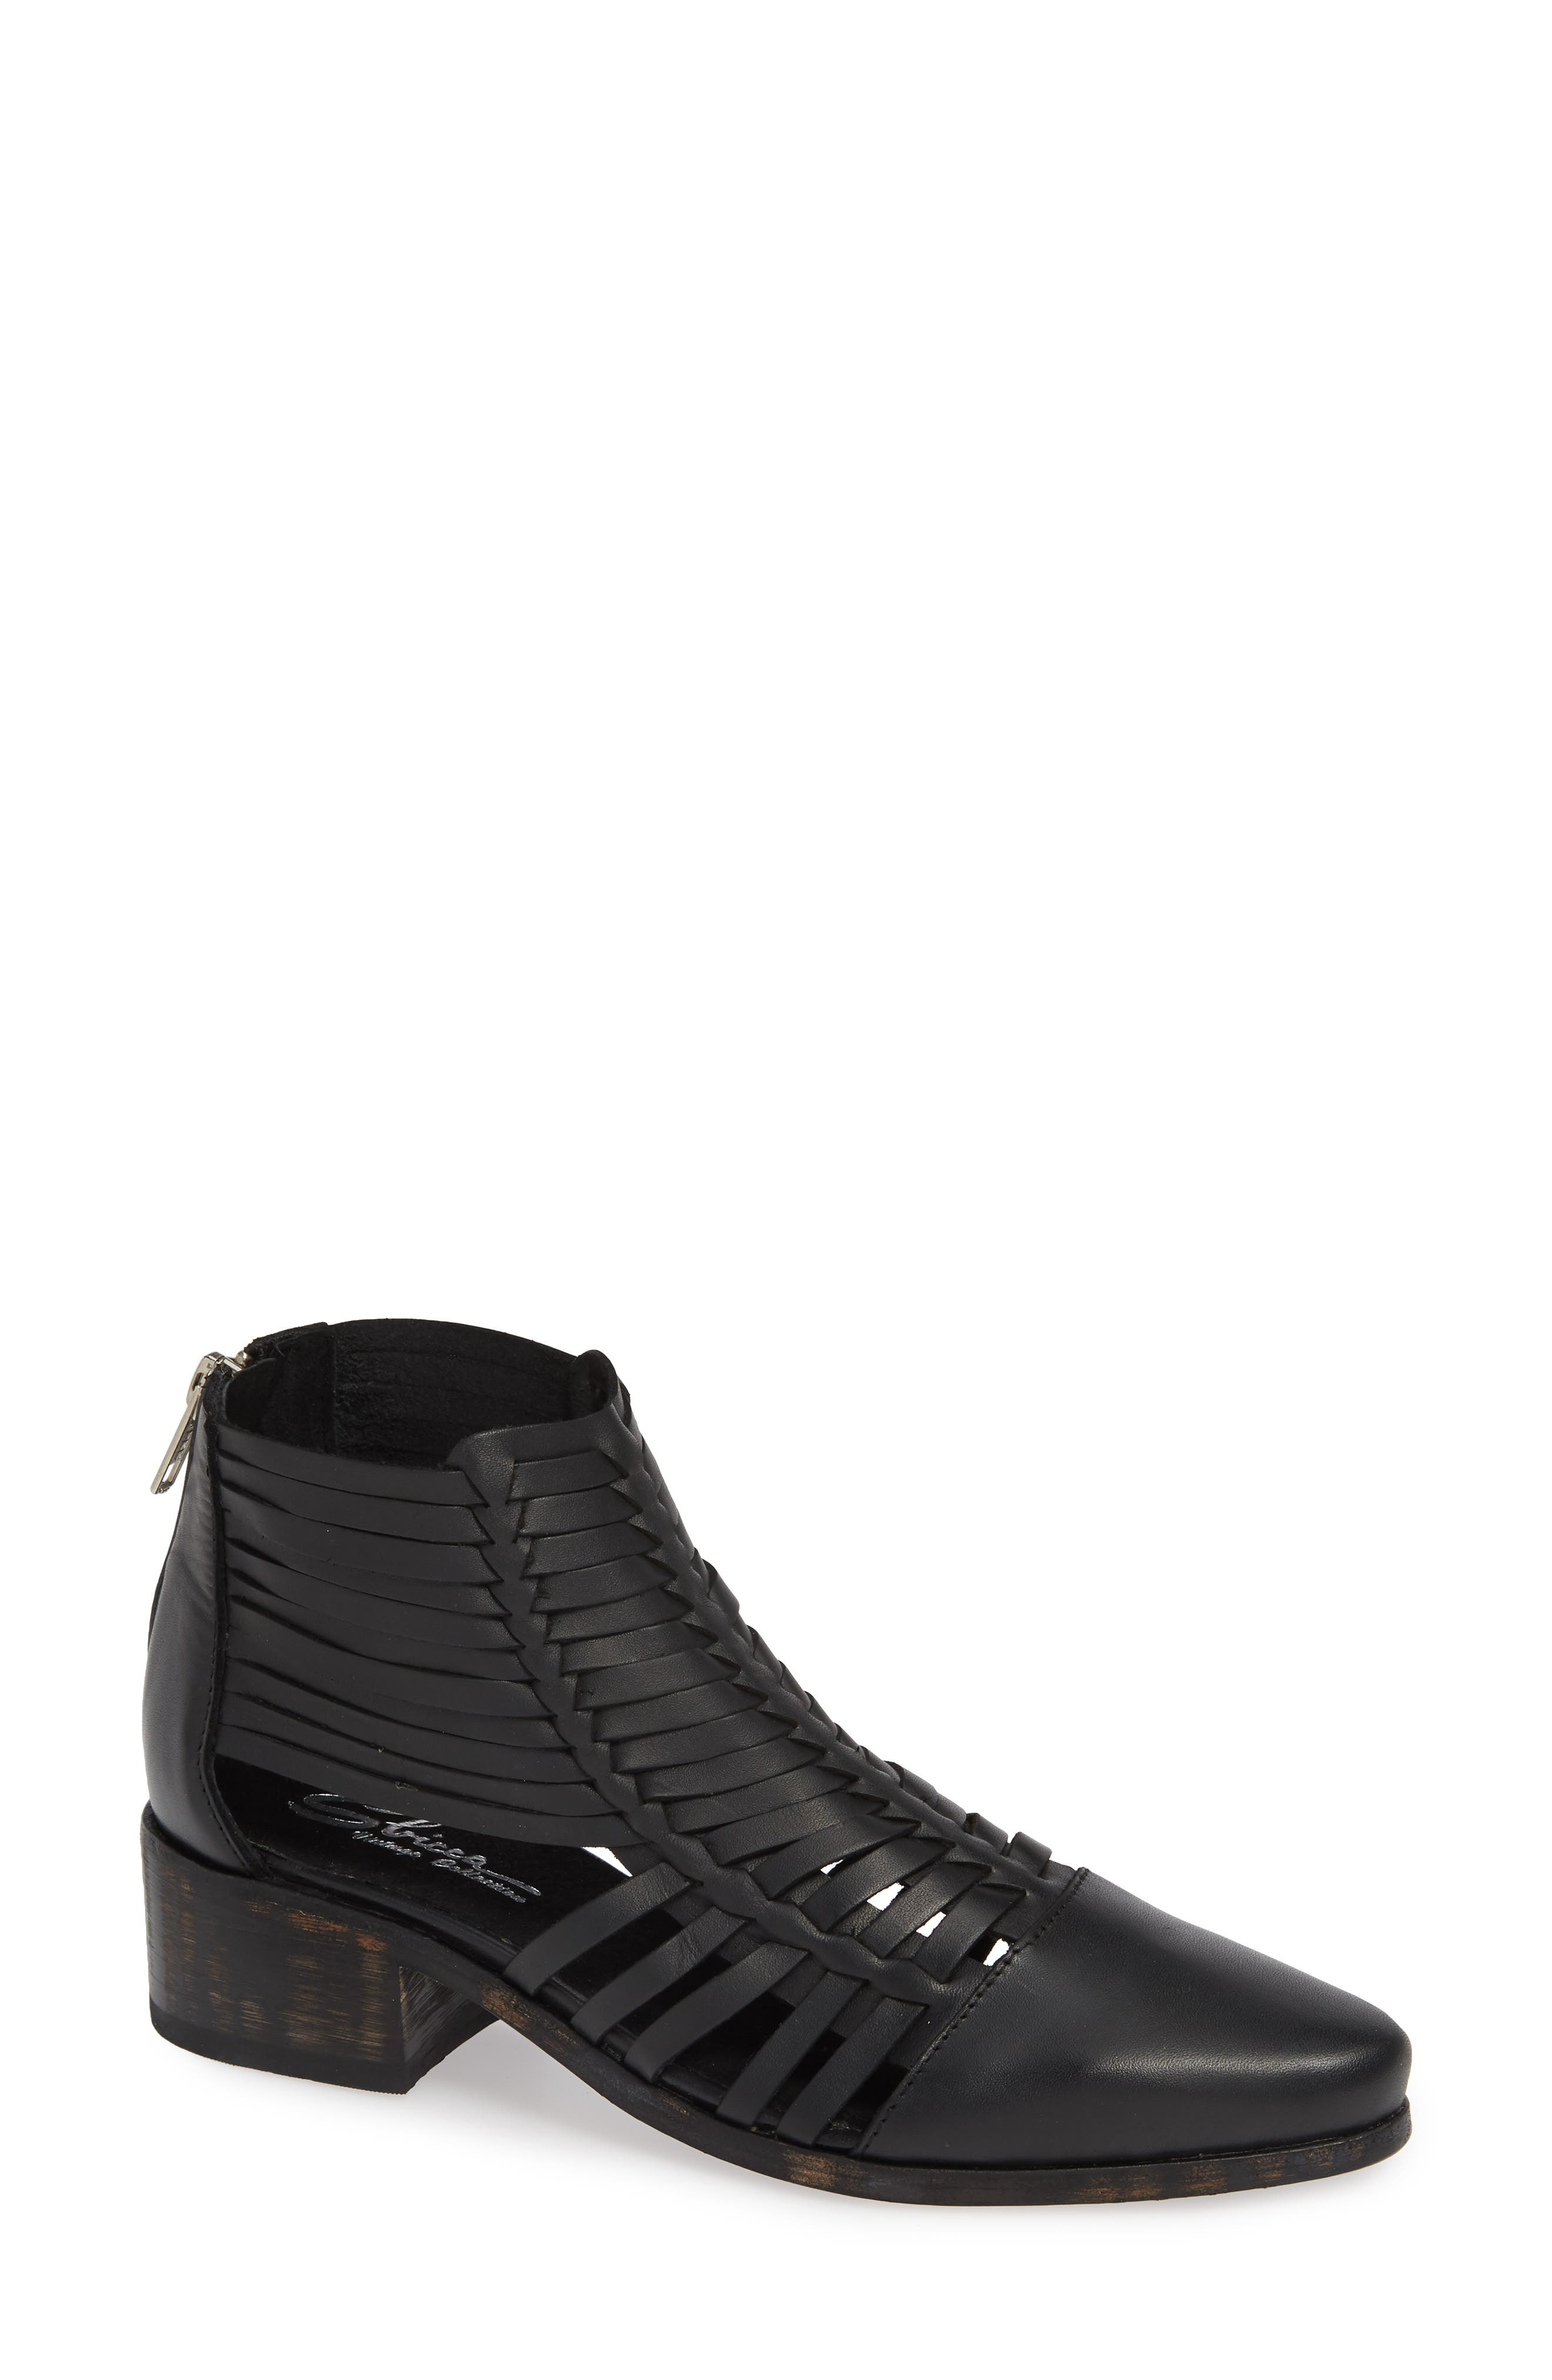 Sbicca Rosabell Woven Bootie, Black